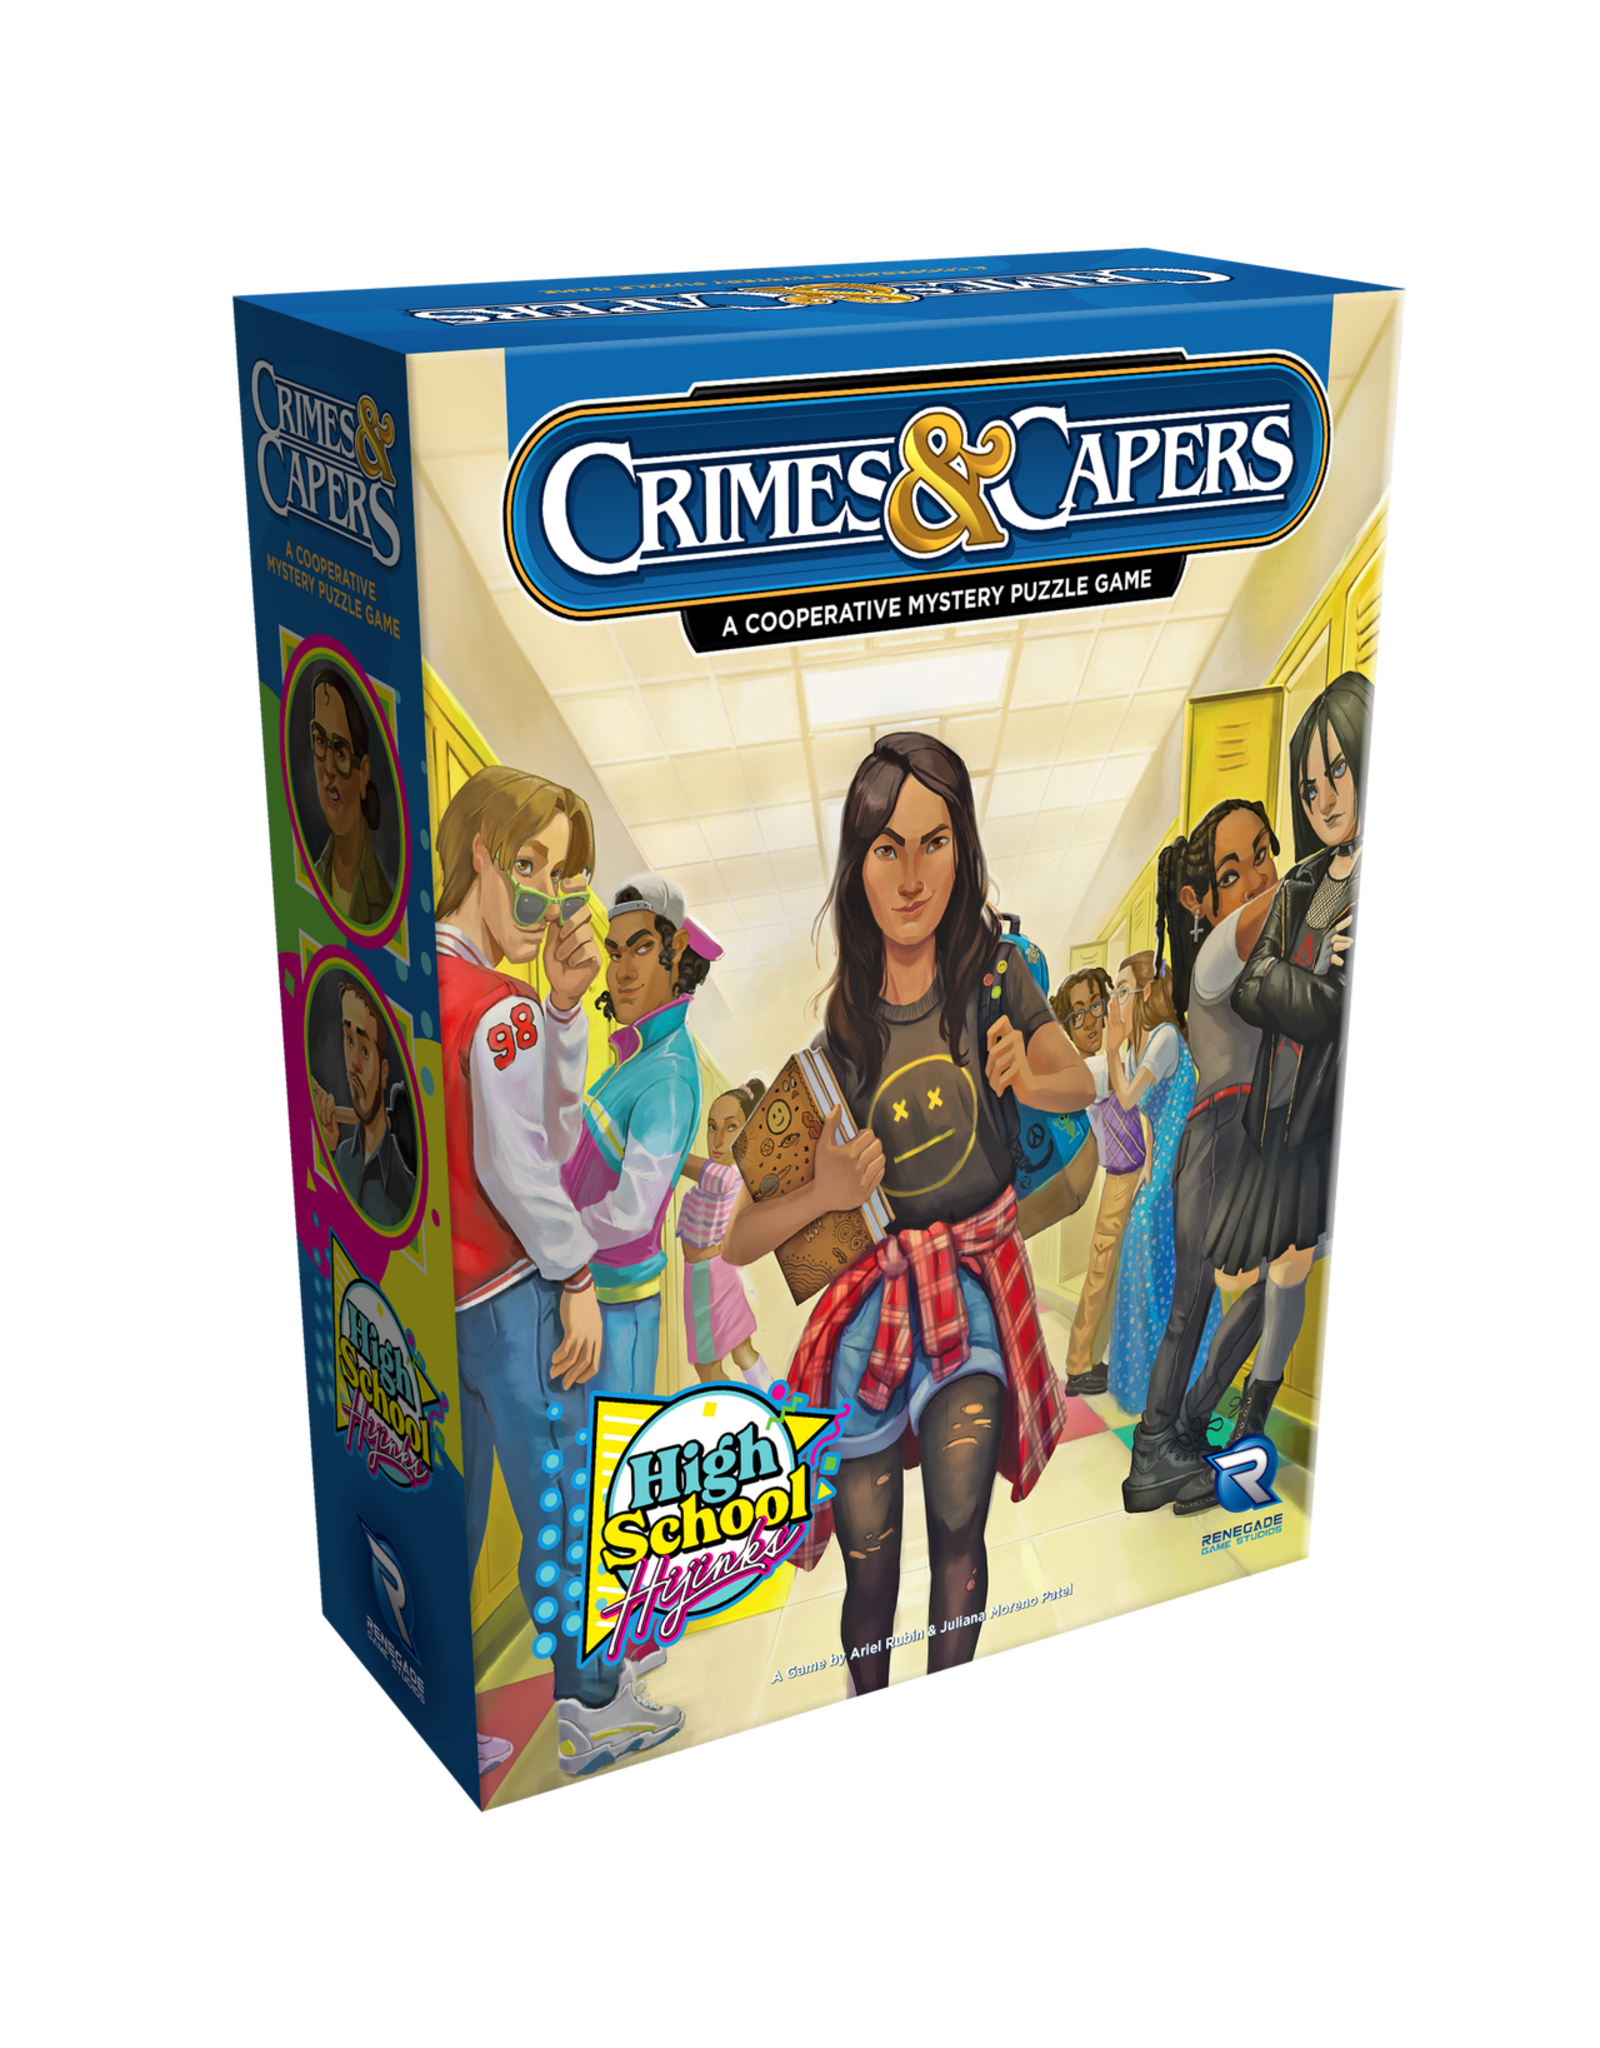 Crimes and Capers: High School Hijinks